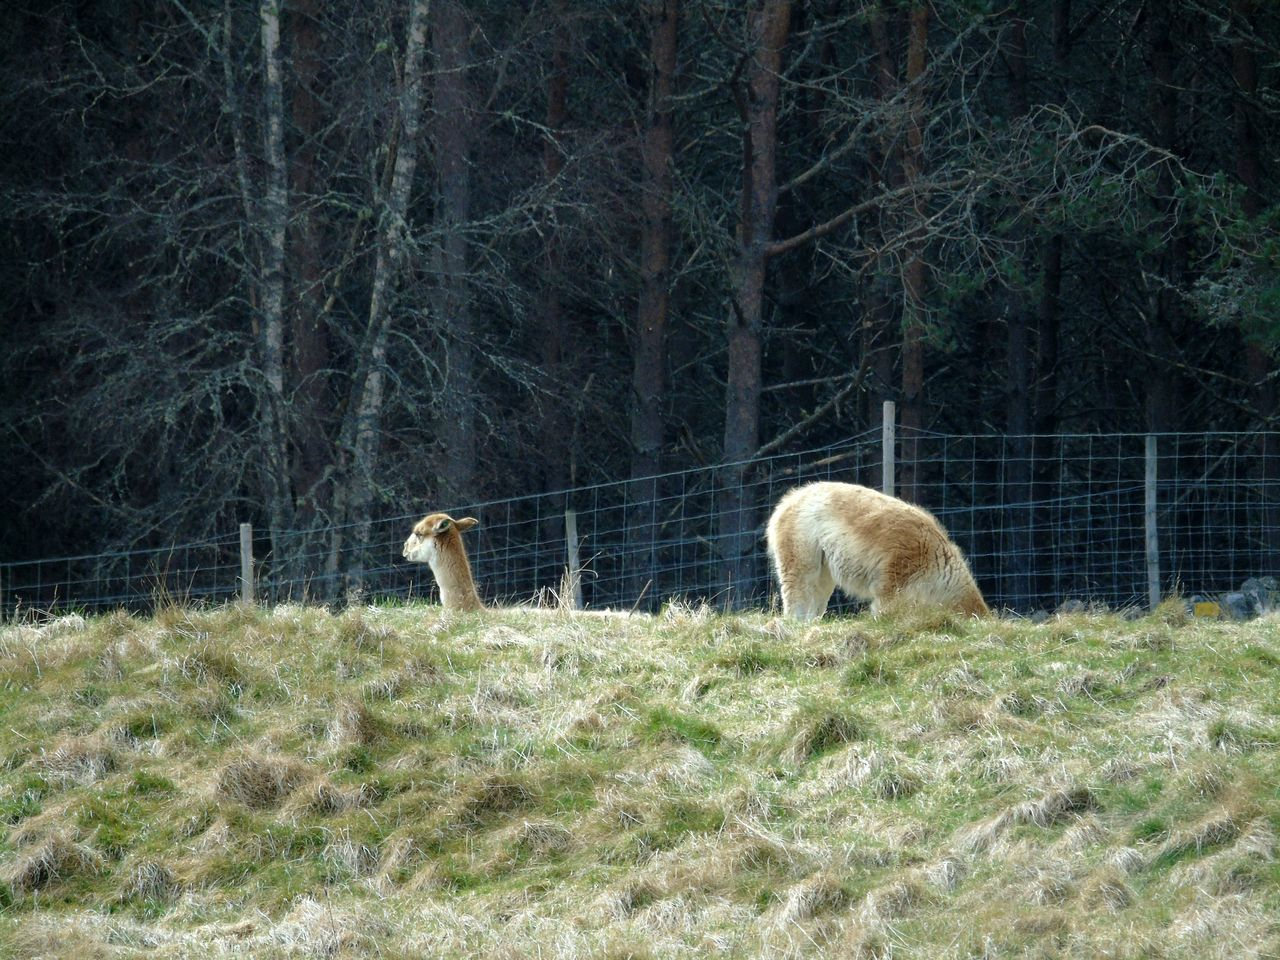 Vicuna using portals to look behind it!!! 😨😂😂😂 Uk Scotland Eye Em Scotland Kincraig Wildlife Park Wildlife & Nature Mammal Animal Themes Nature Outdoors One Animal No People Animal Wildlife Vicuña Beauty In Nature Outdoor Photography Beautiful Animals  Animals In The Wild Wildlife Photography Animal_collection Backgrounds Funny Funny Moments Funny Anımals Wildlife Photos